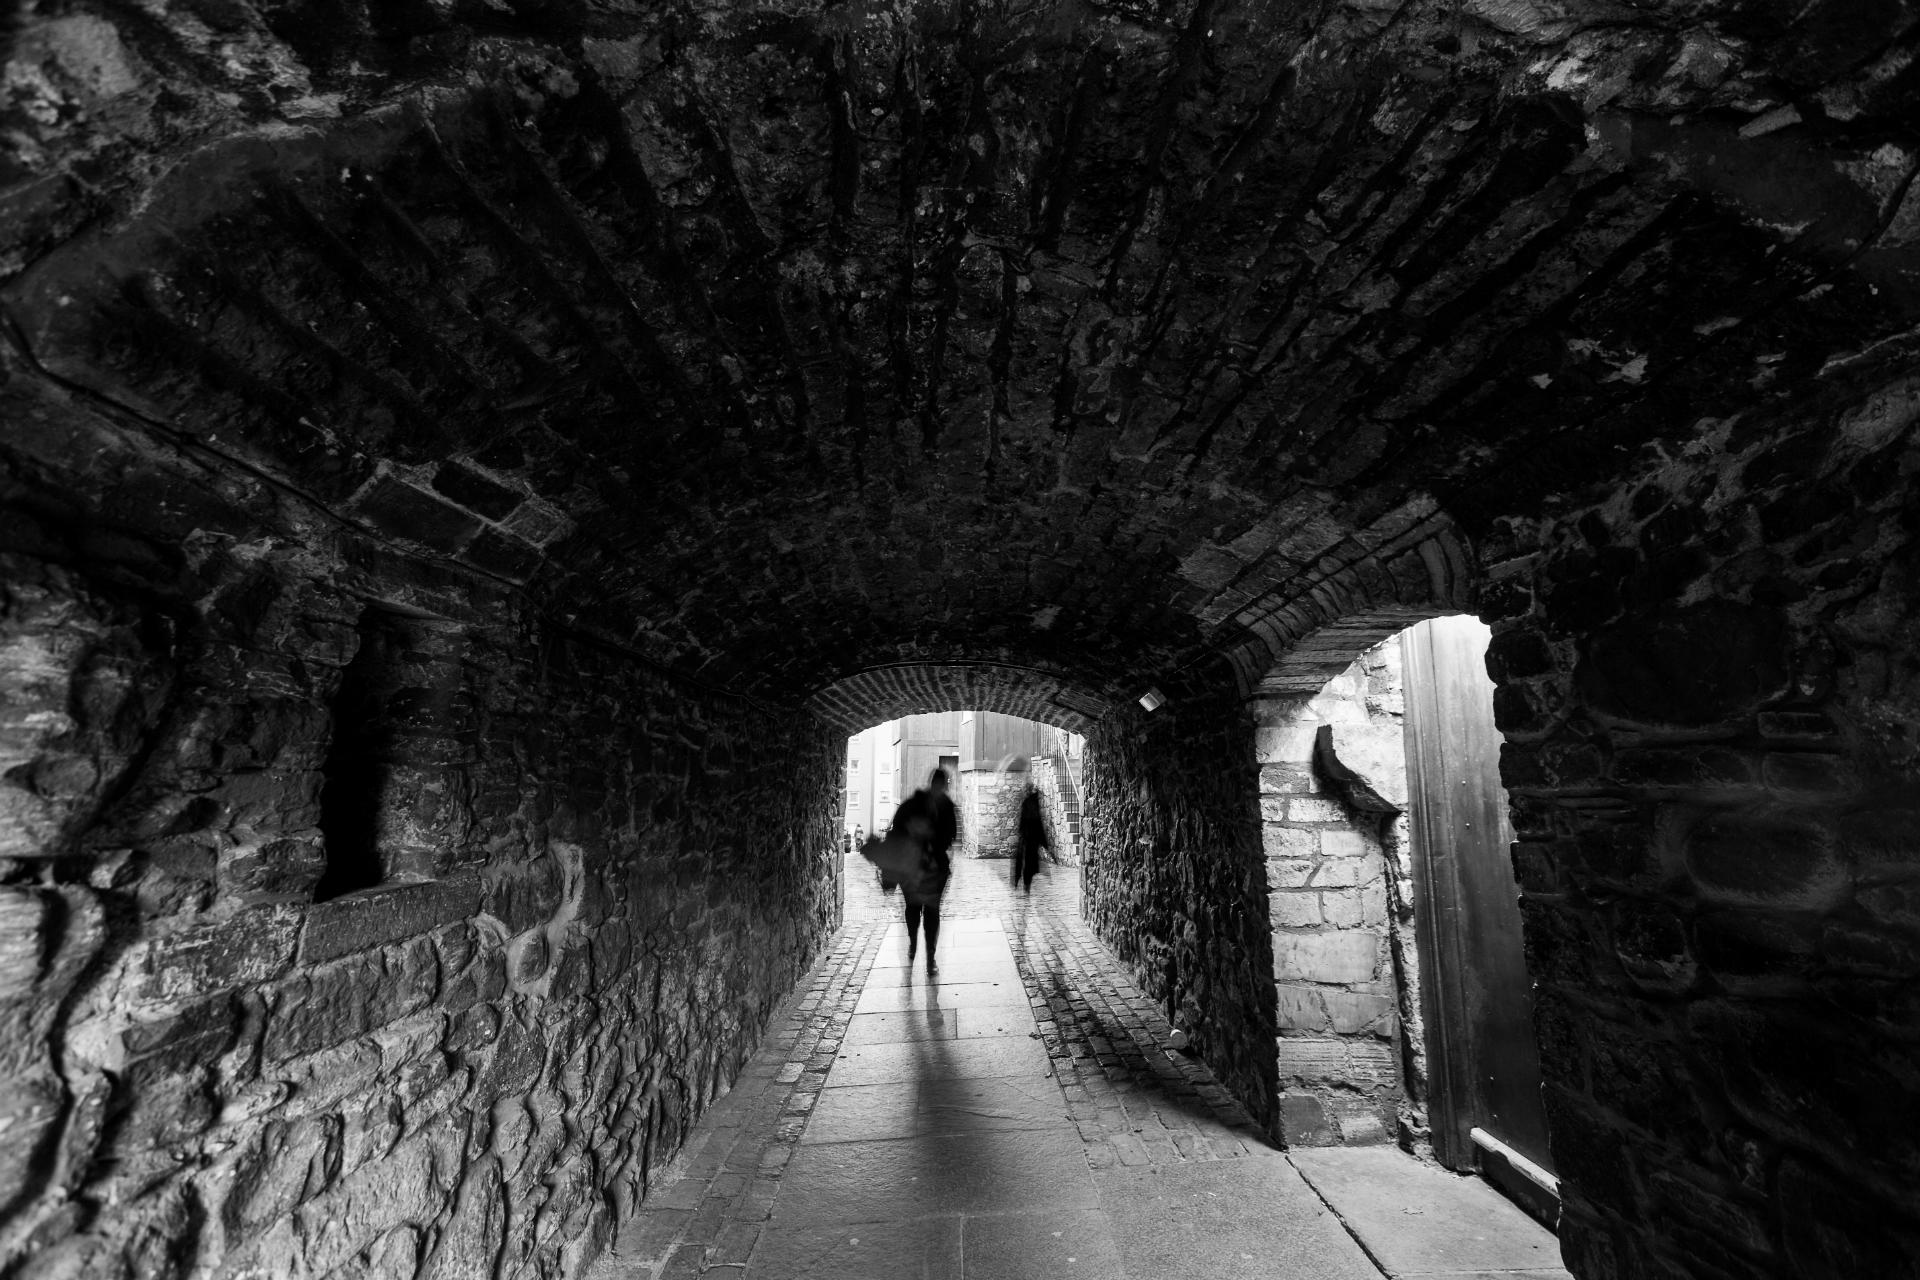 Edinburgh World Heritage Old Town Closes Project